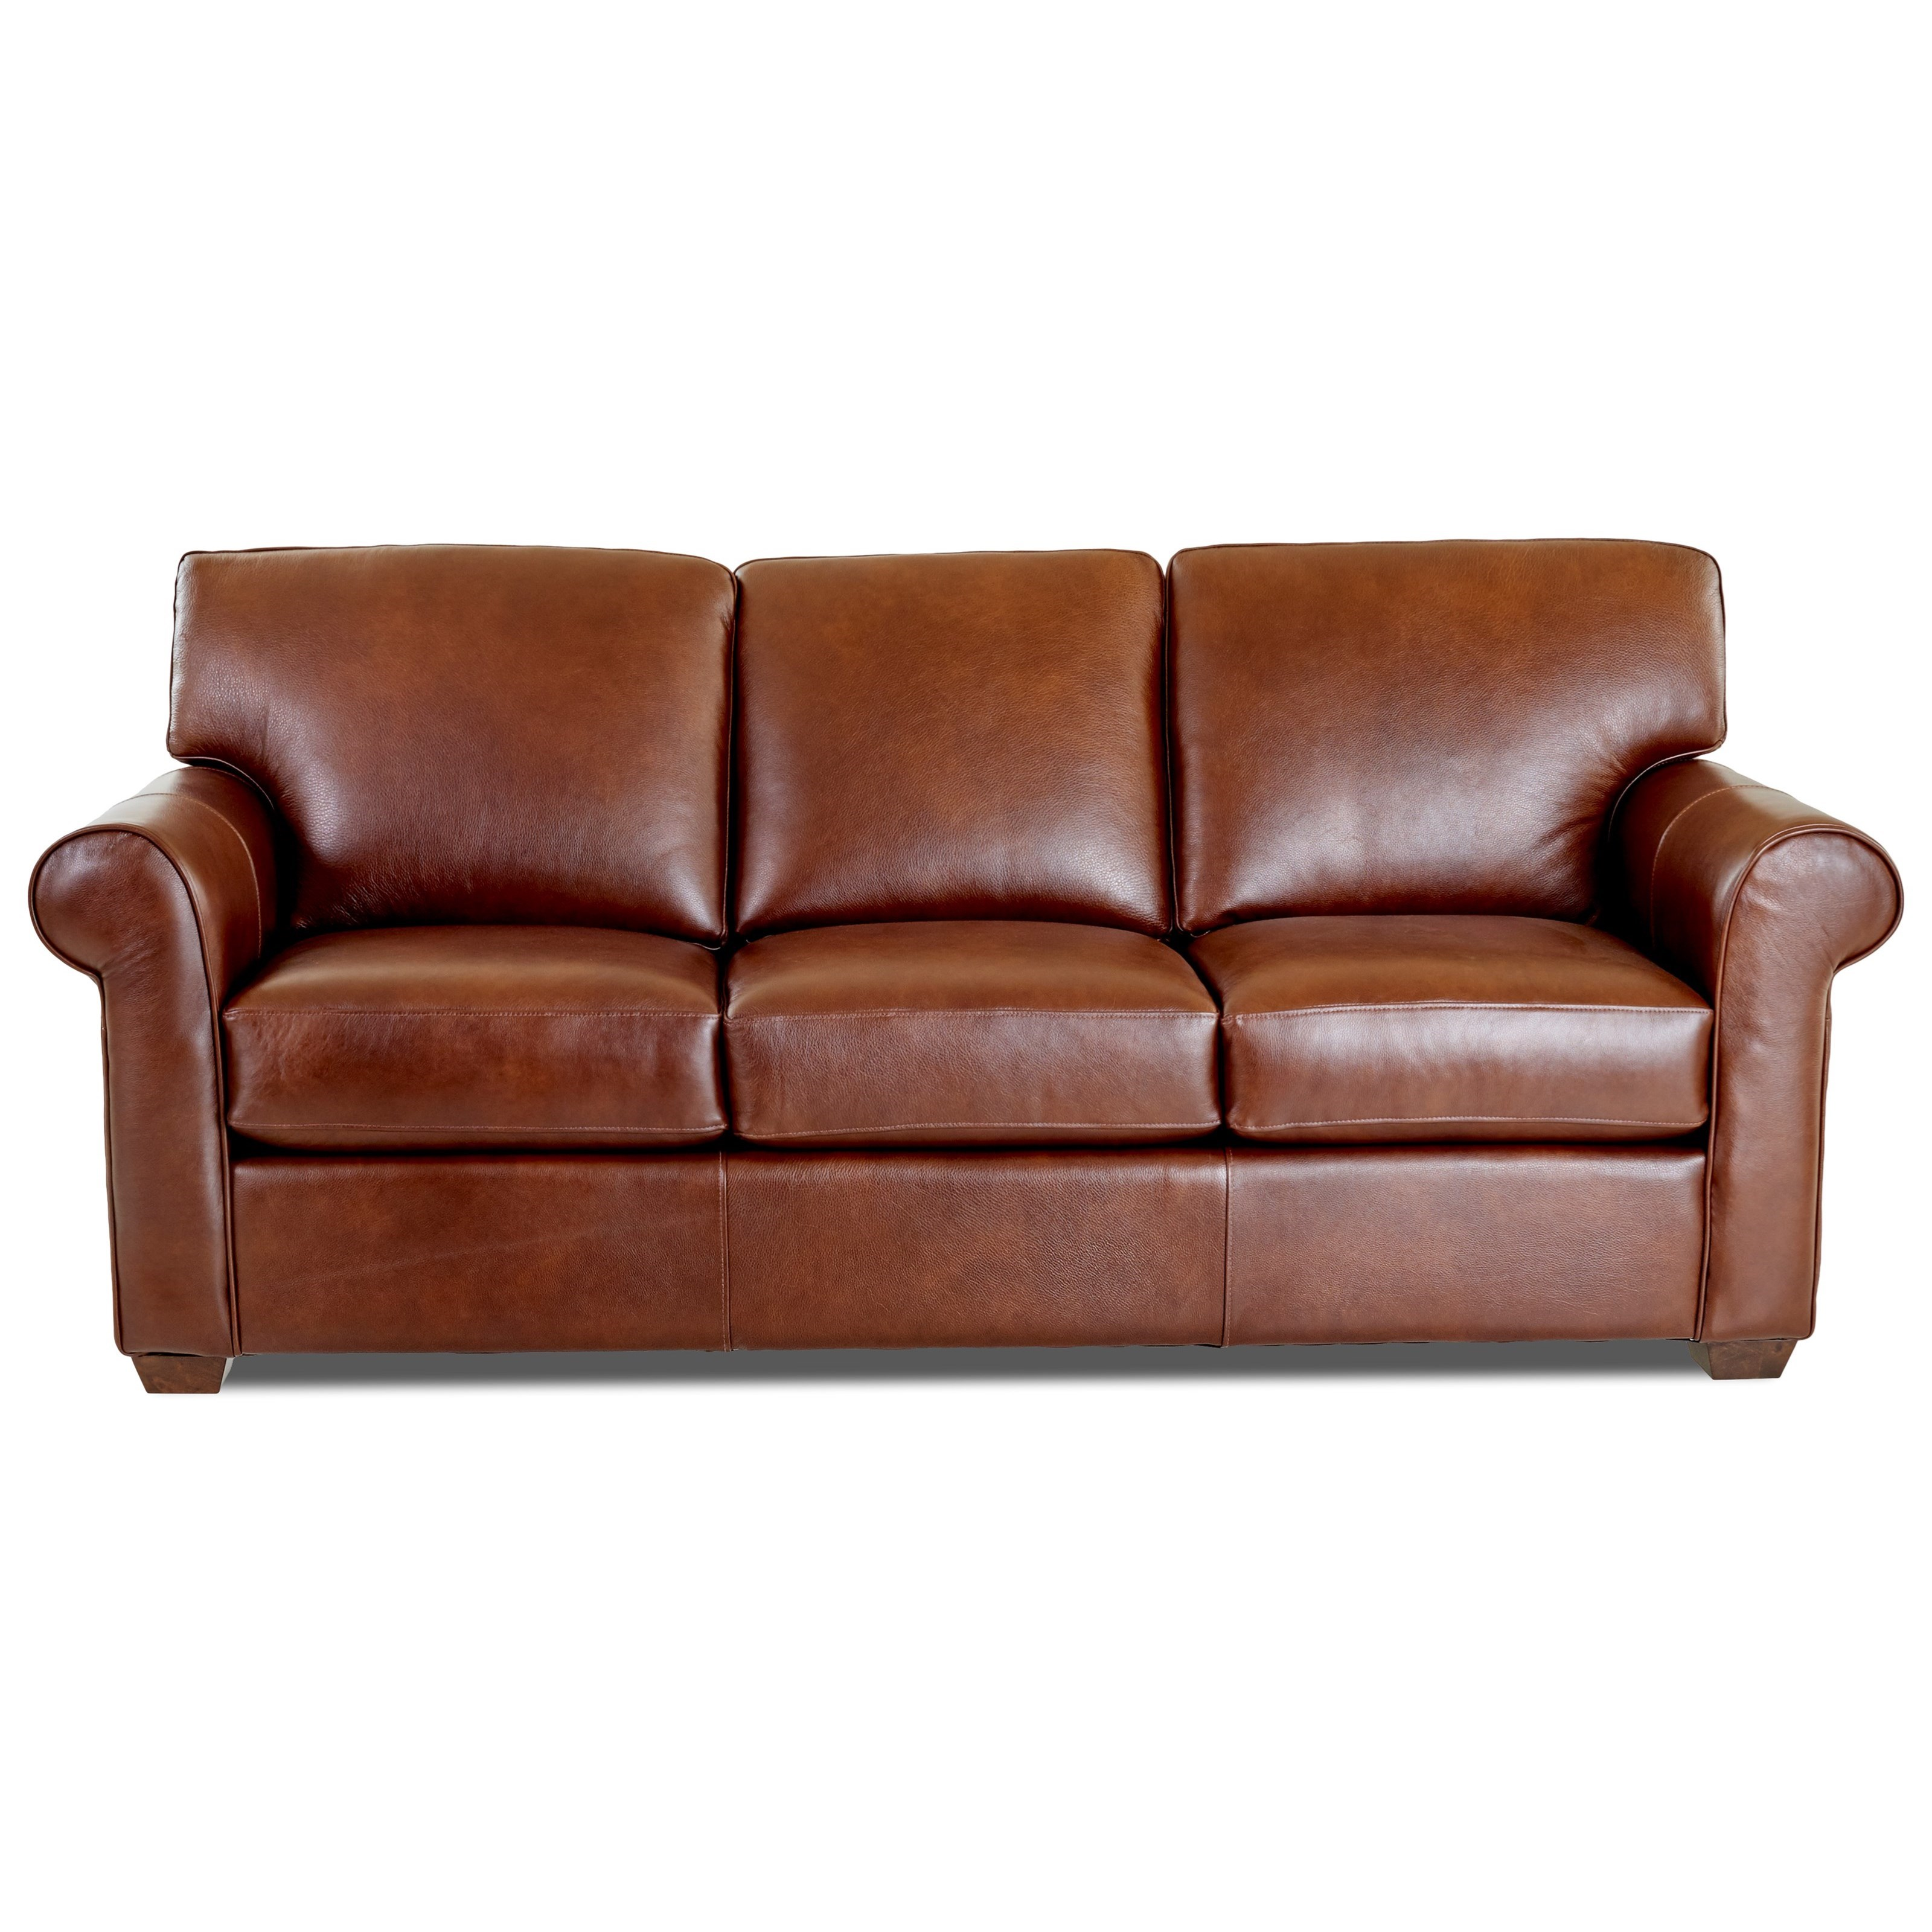 sofa wood frame exposed uk foam cushion for sofas klaussner canoy transitional with rolled arms and